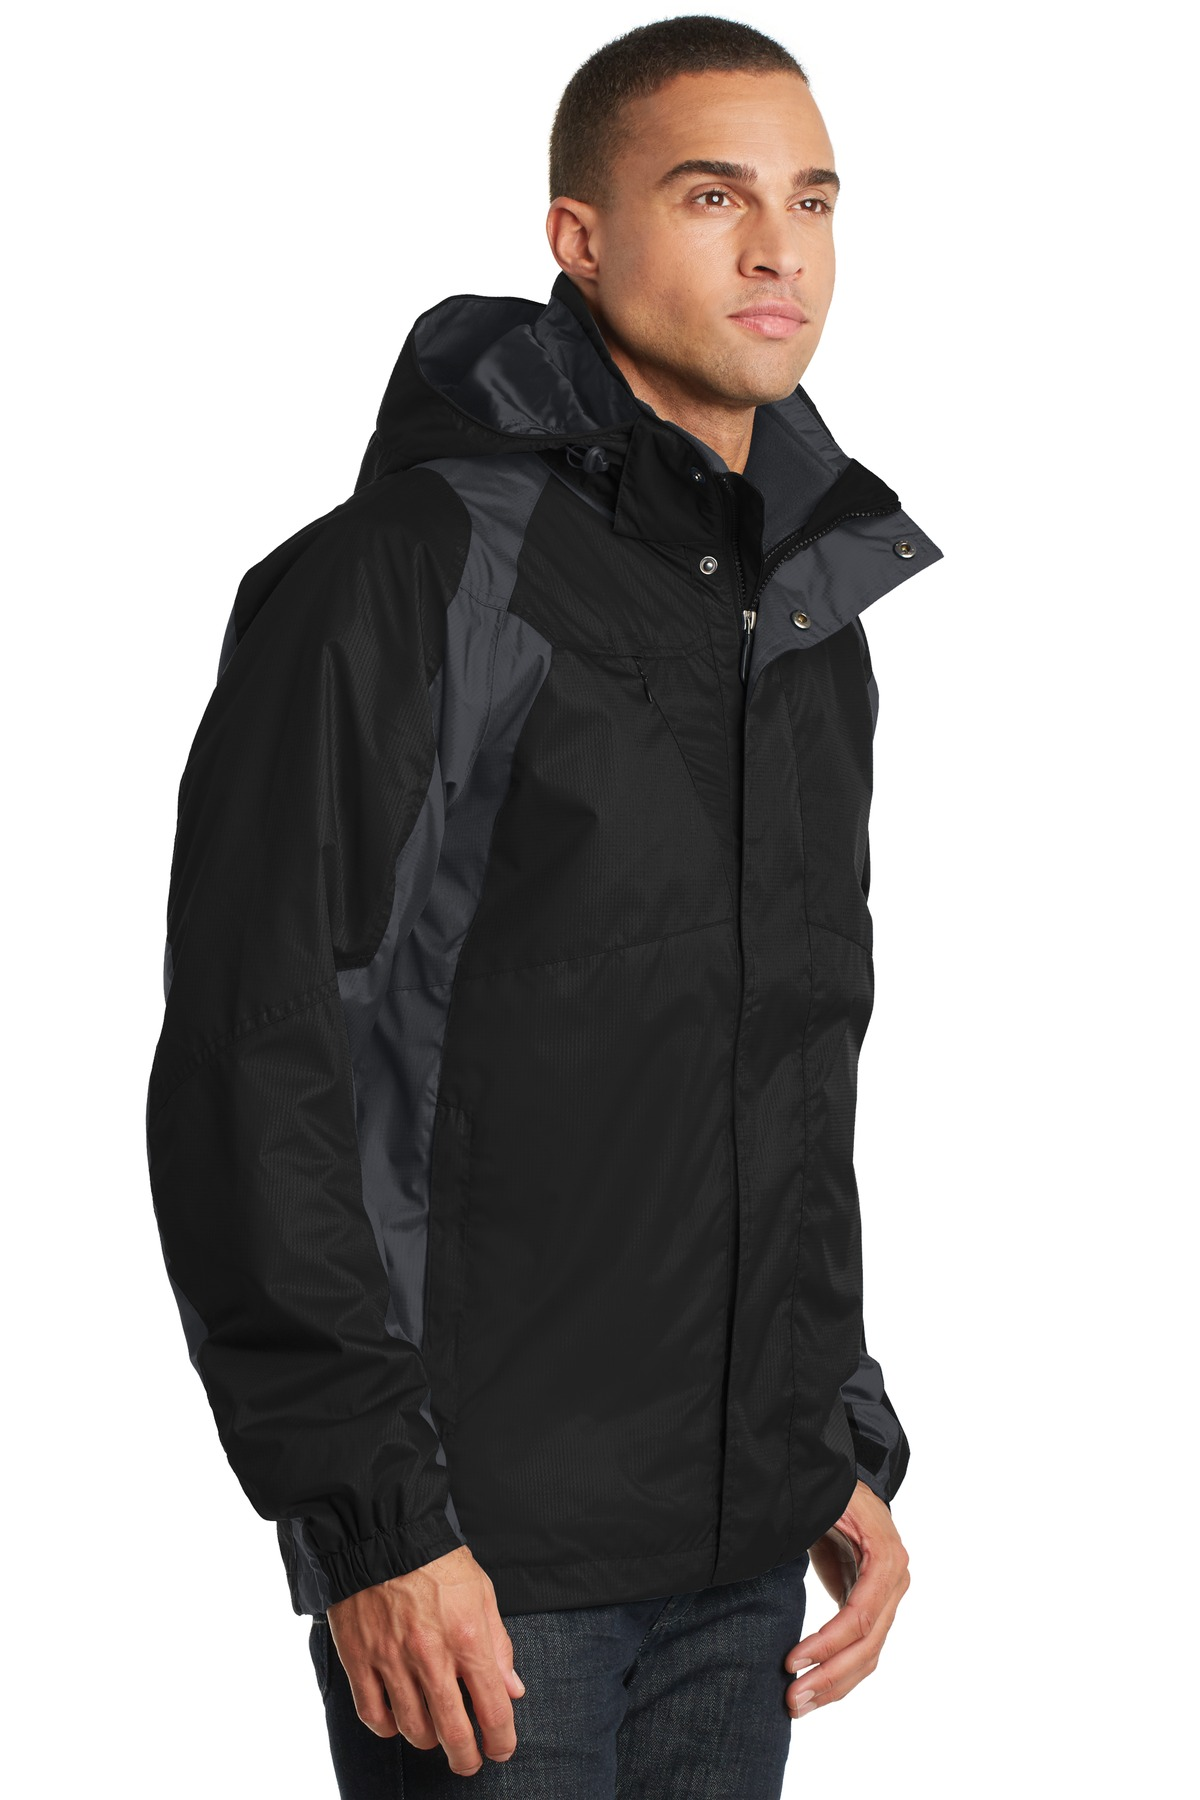 Ranger 3-in-1 Jacket - RCG1440